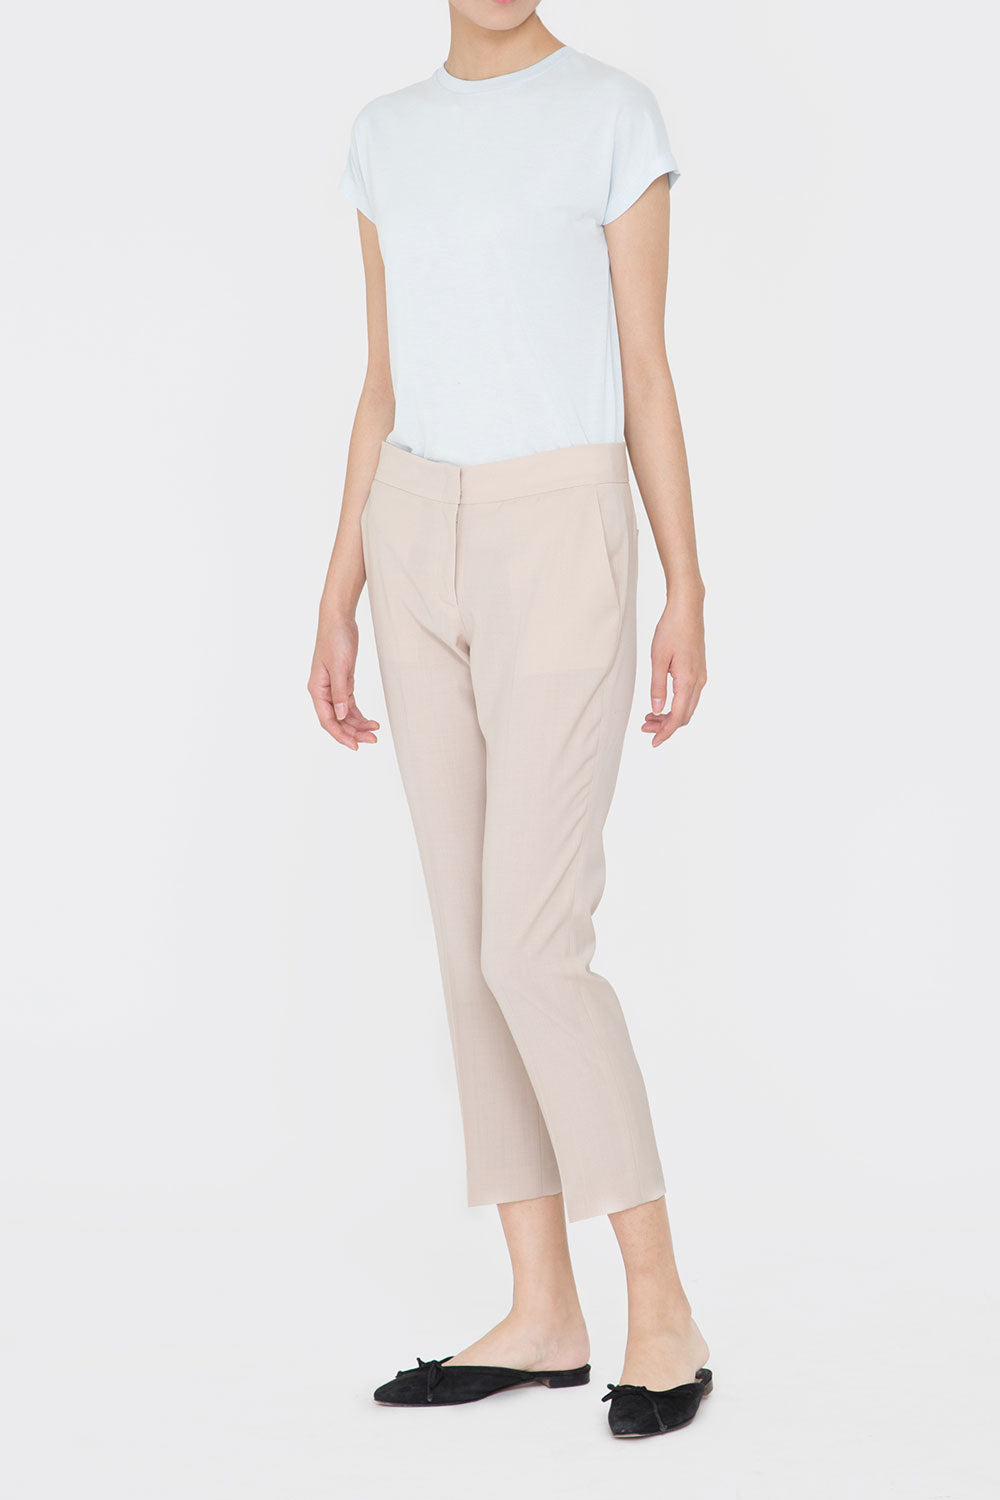 BEIGE JENNA TAILORED PANTS